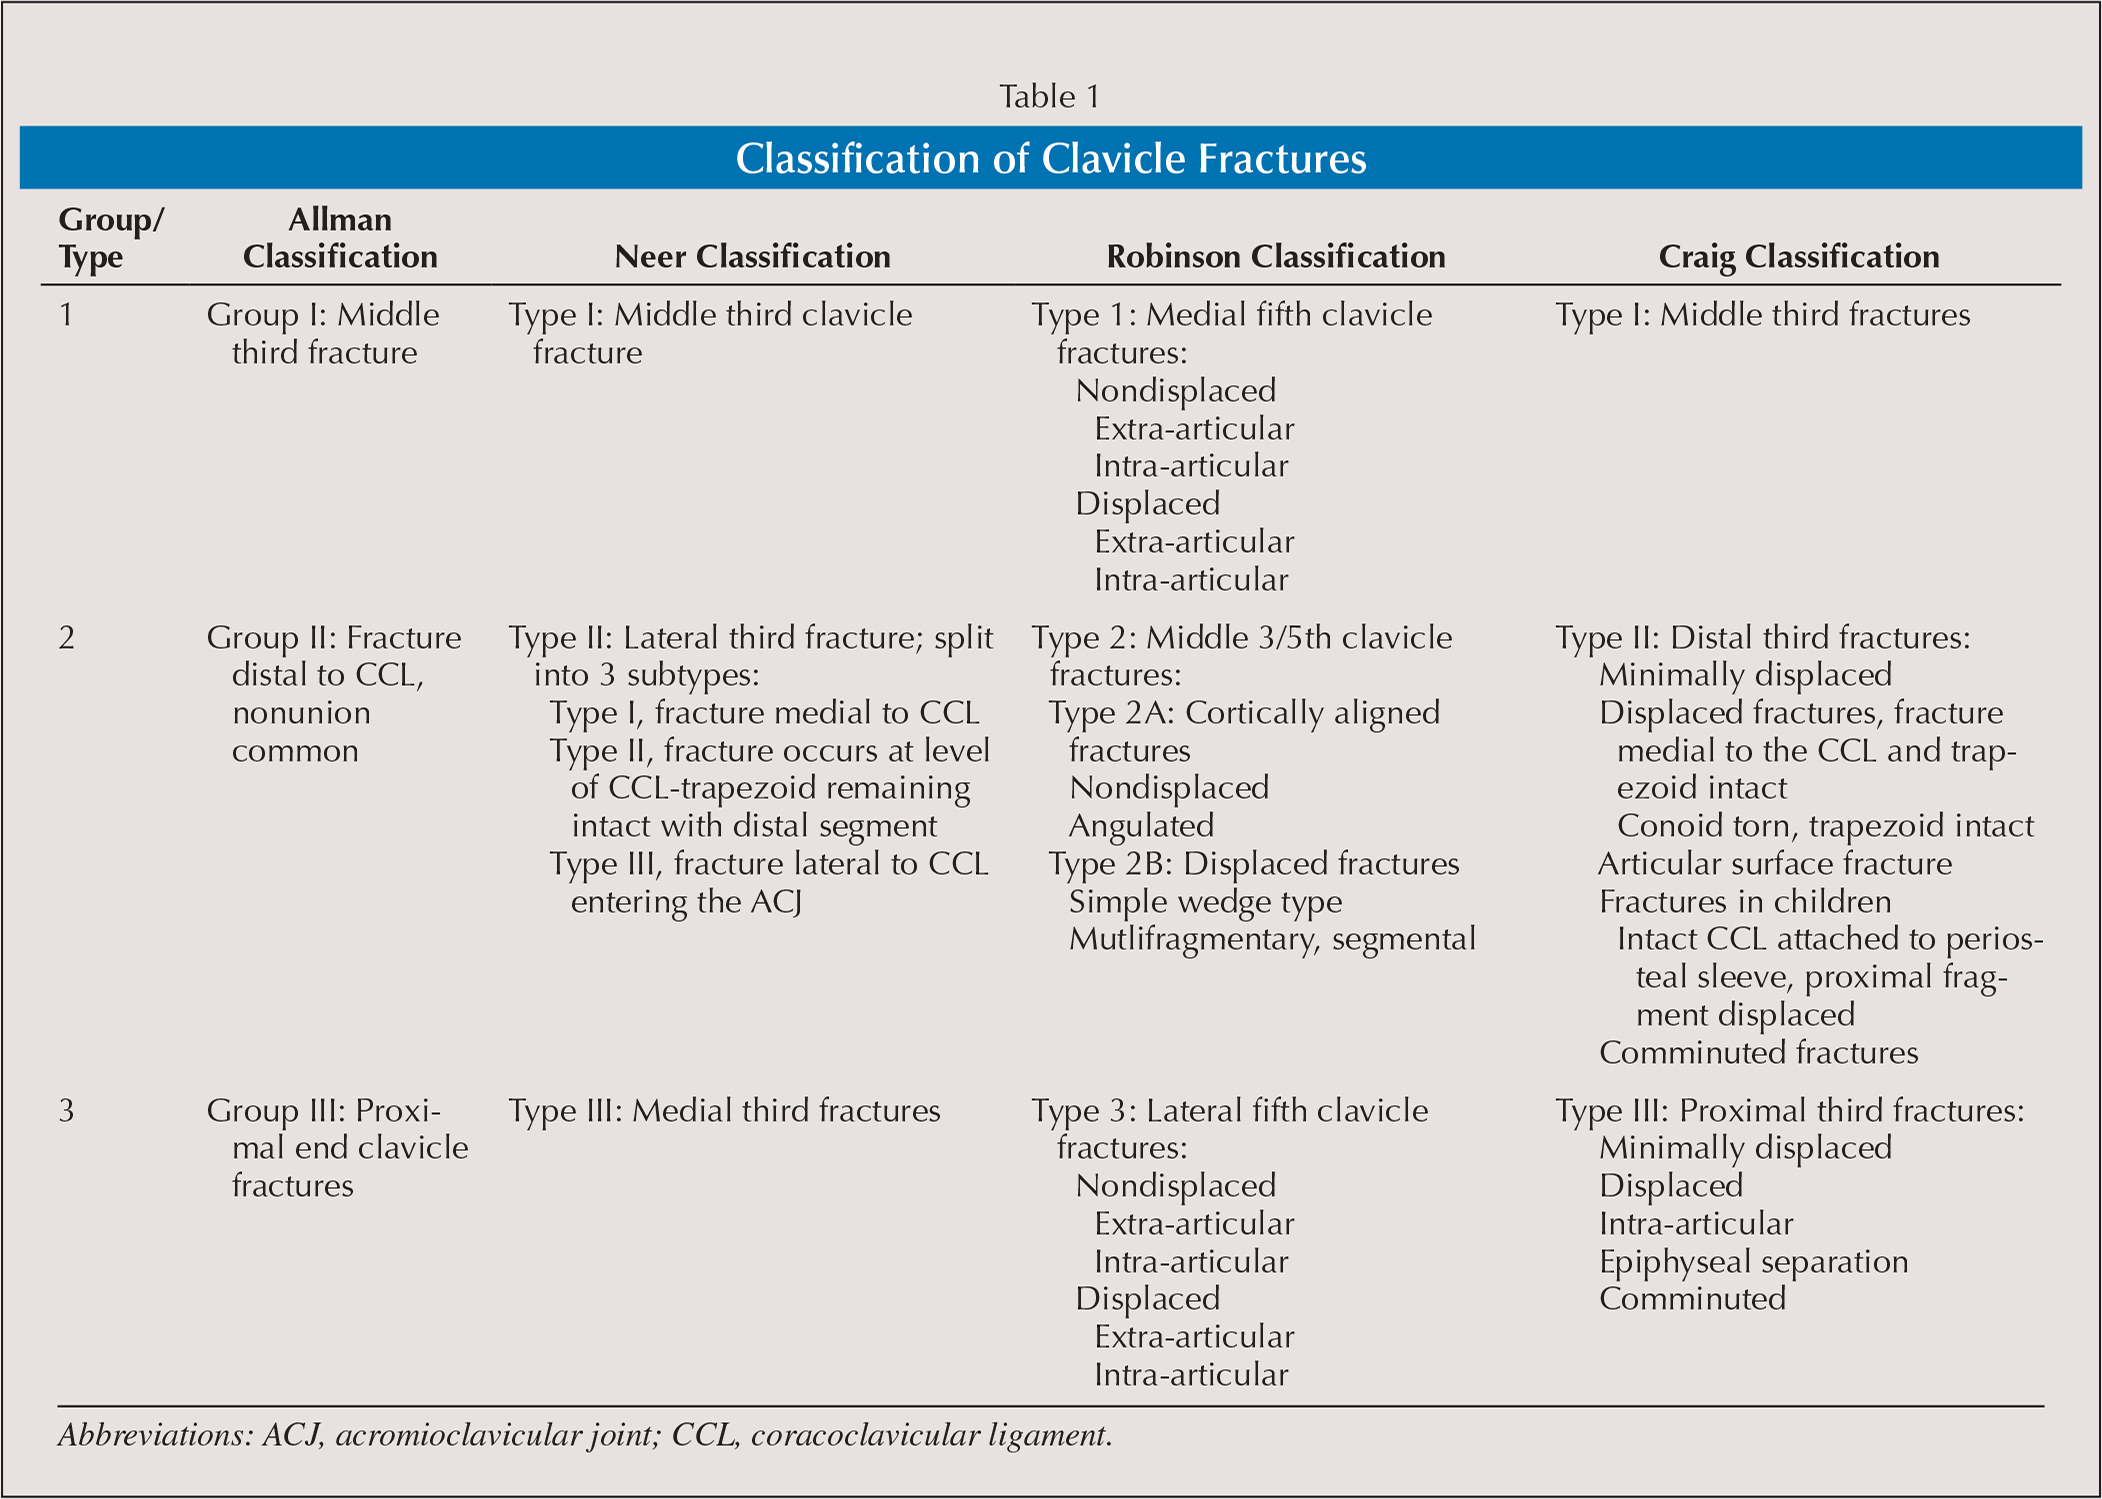 Classification of Clavicle Fractures